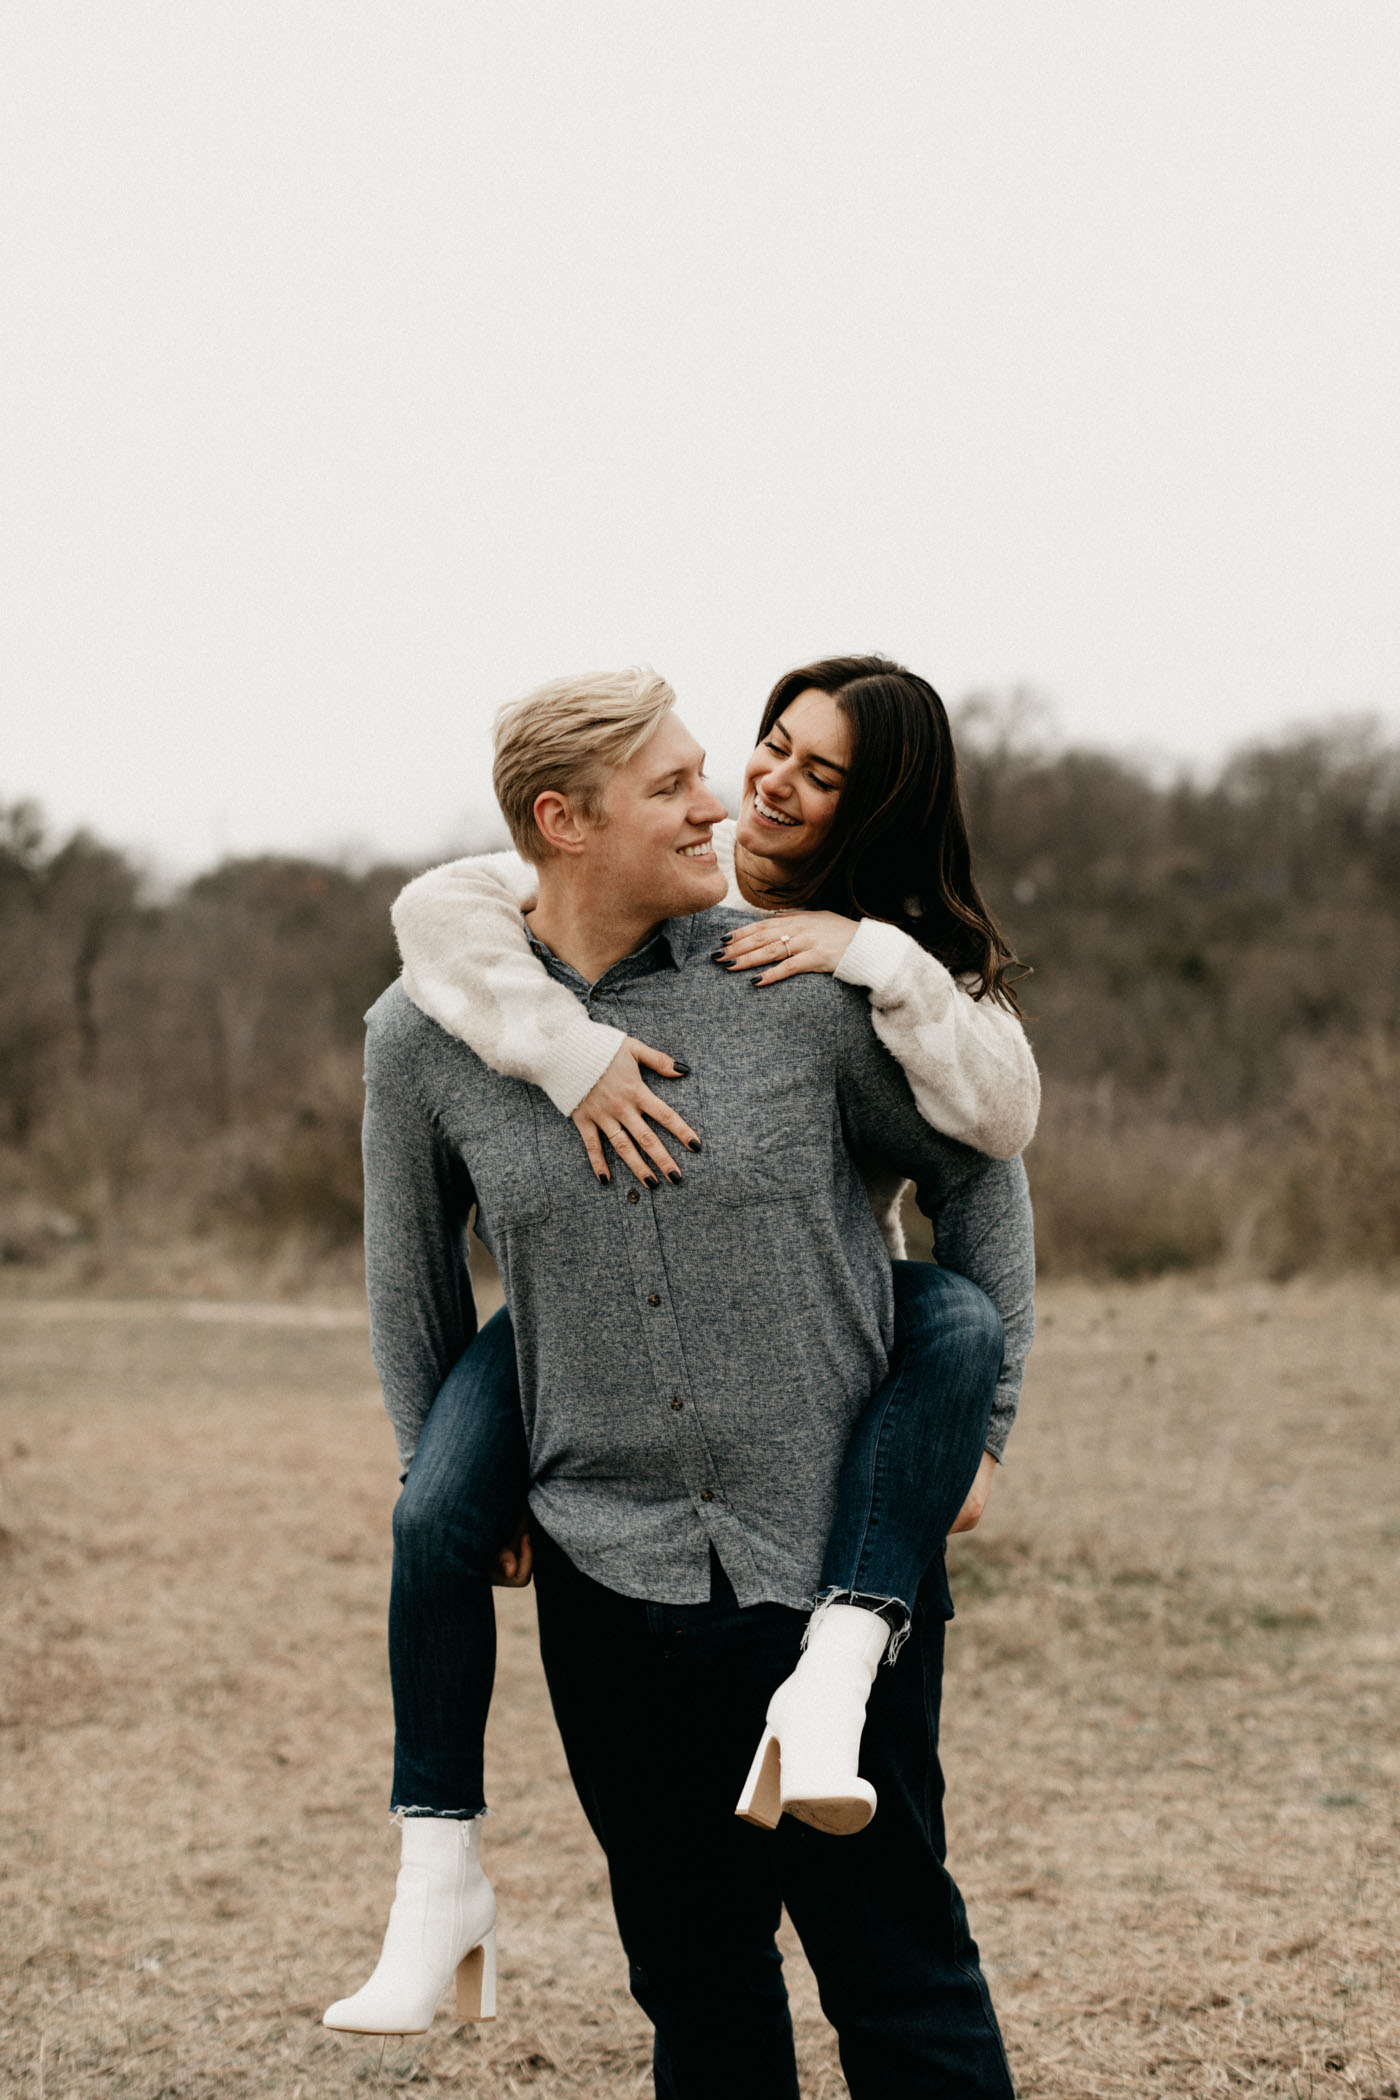 girl on boys back for playful engagement photo in fort worth